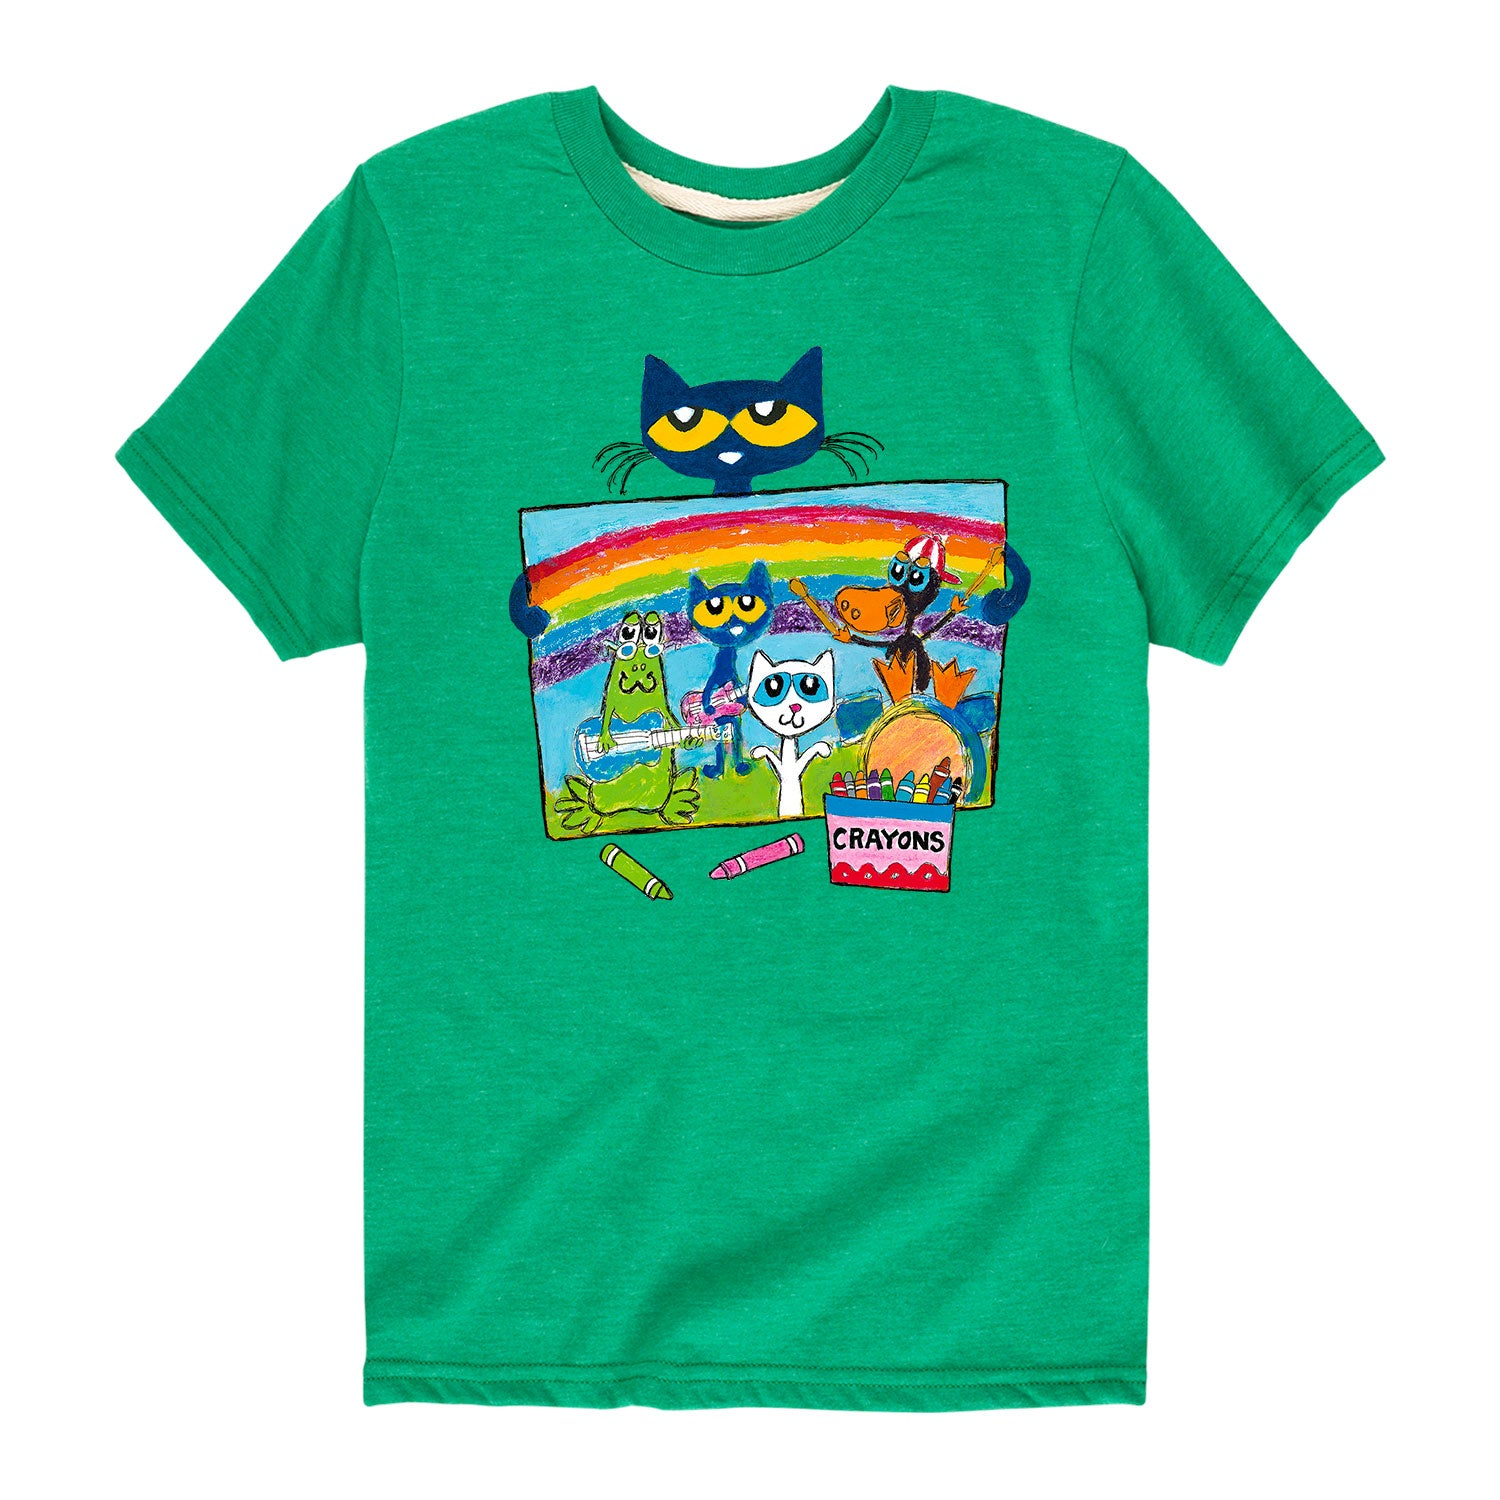 Pete Crayon Drawing - Youth & Toddler Short Sleeve T-Shirt